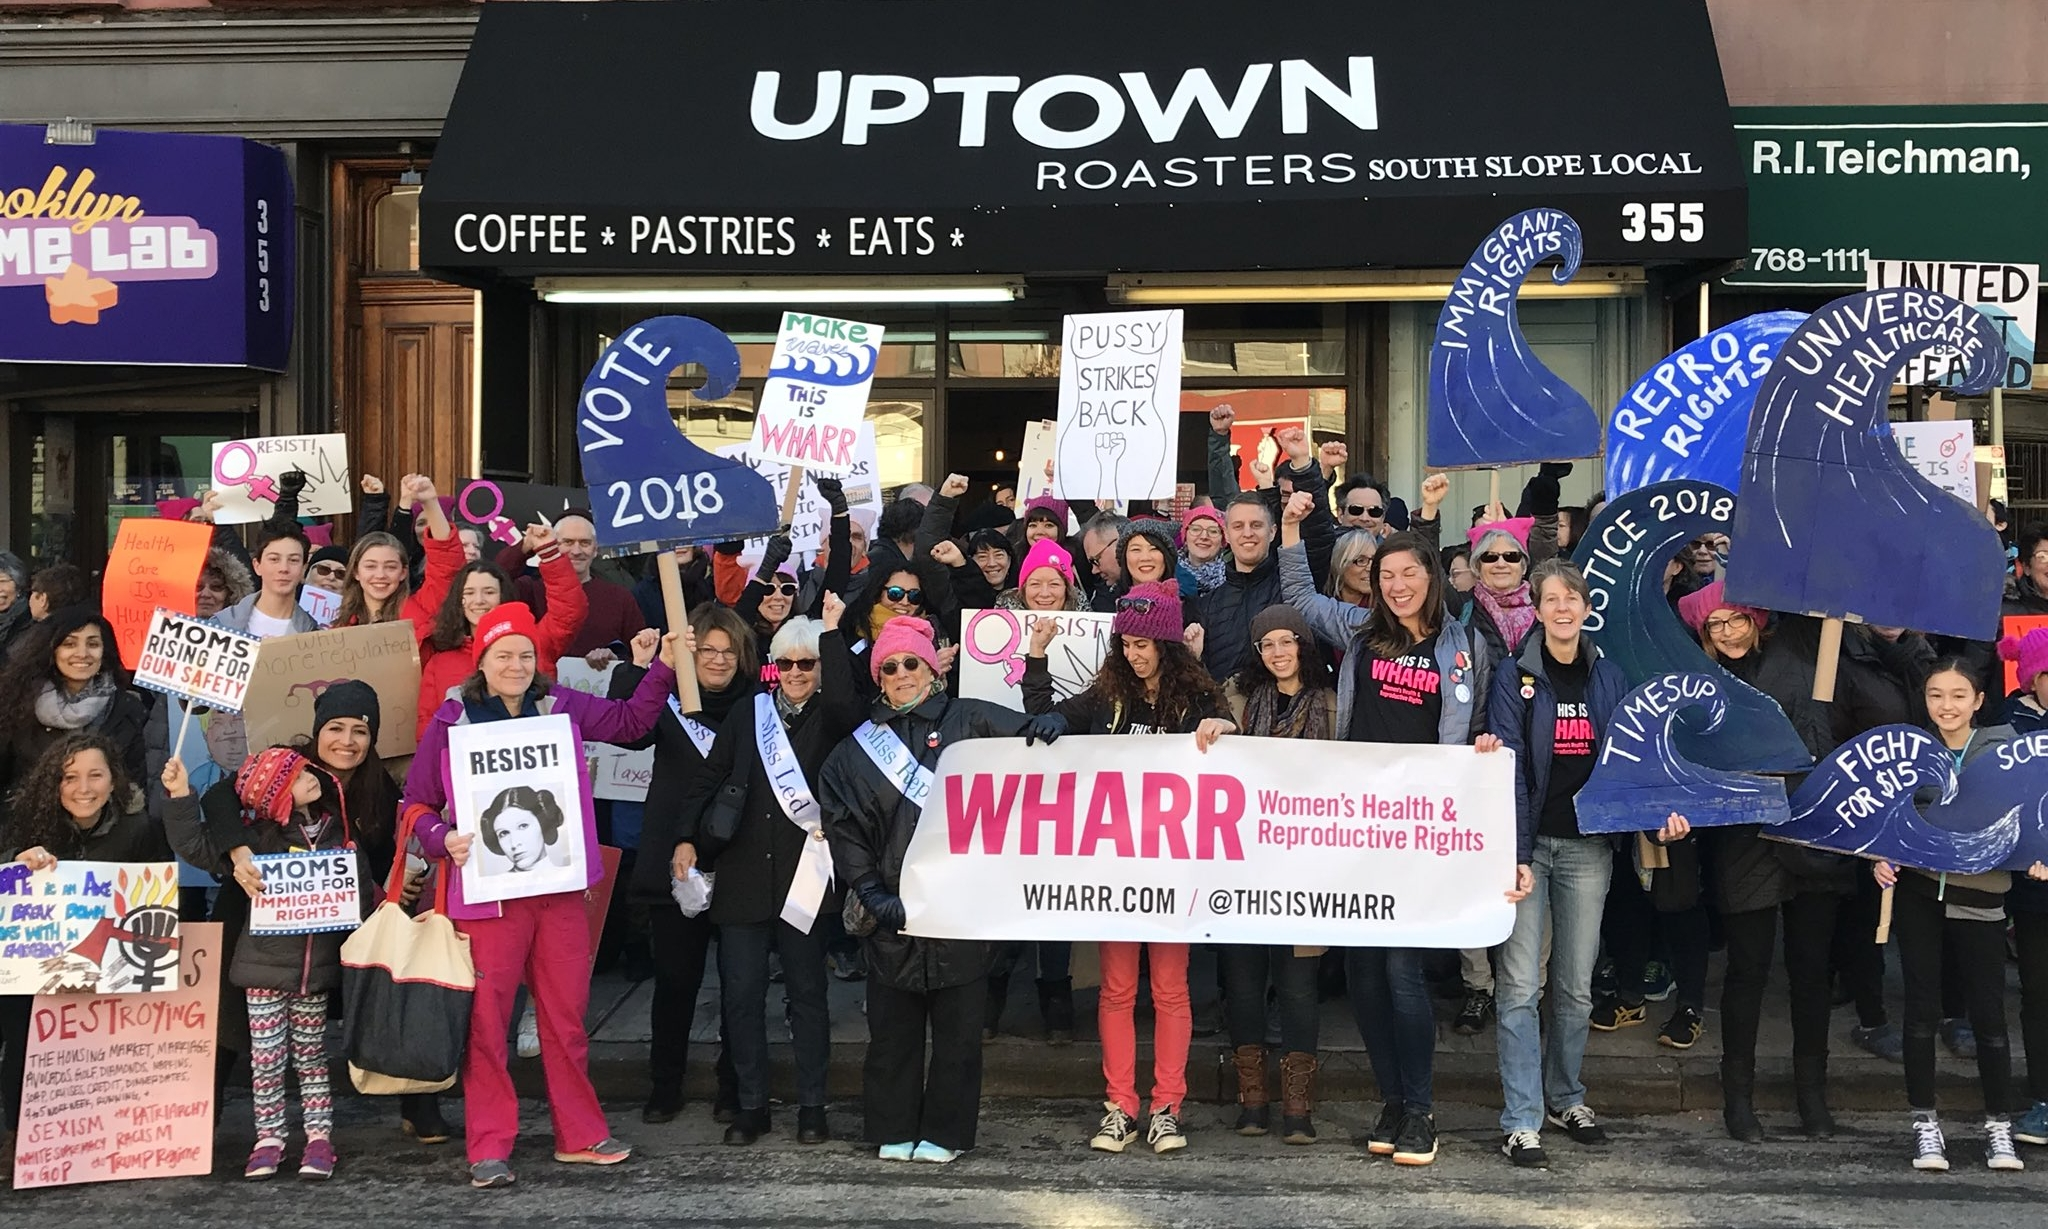 The WHARR + GOBK group meetup for the Women's March on NYC, January 20, 2018